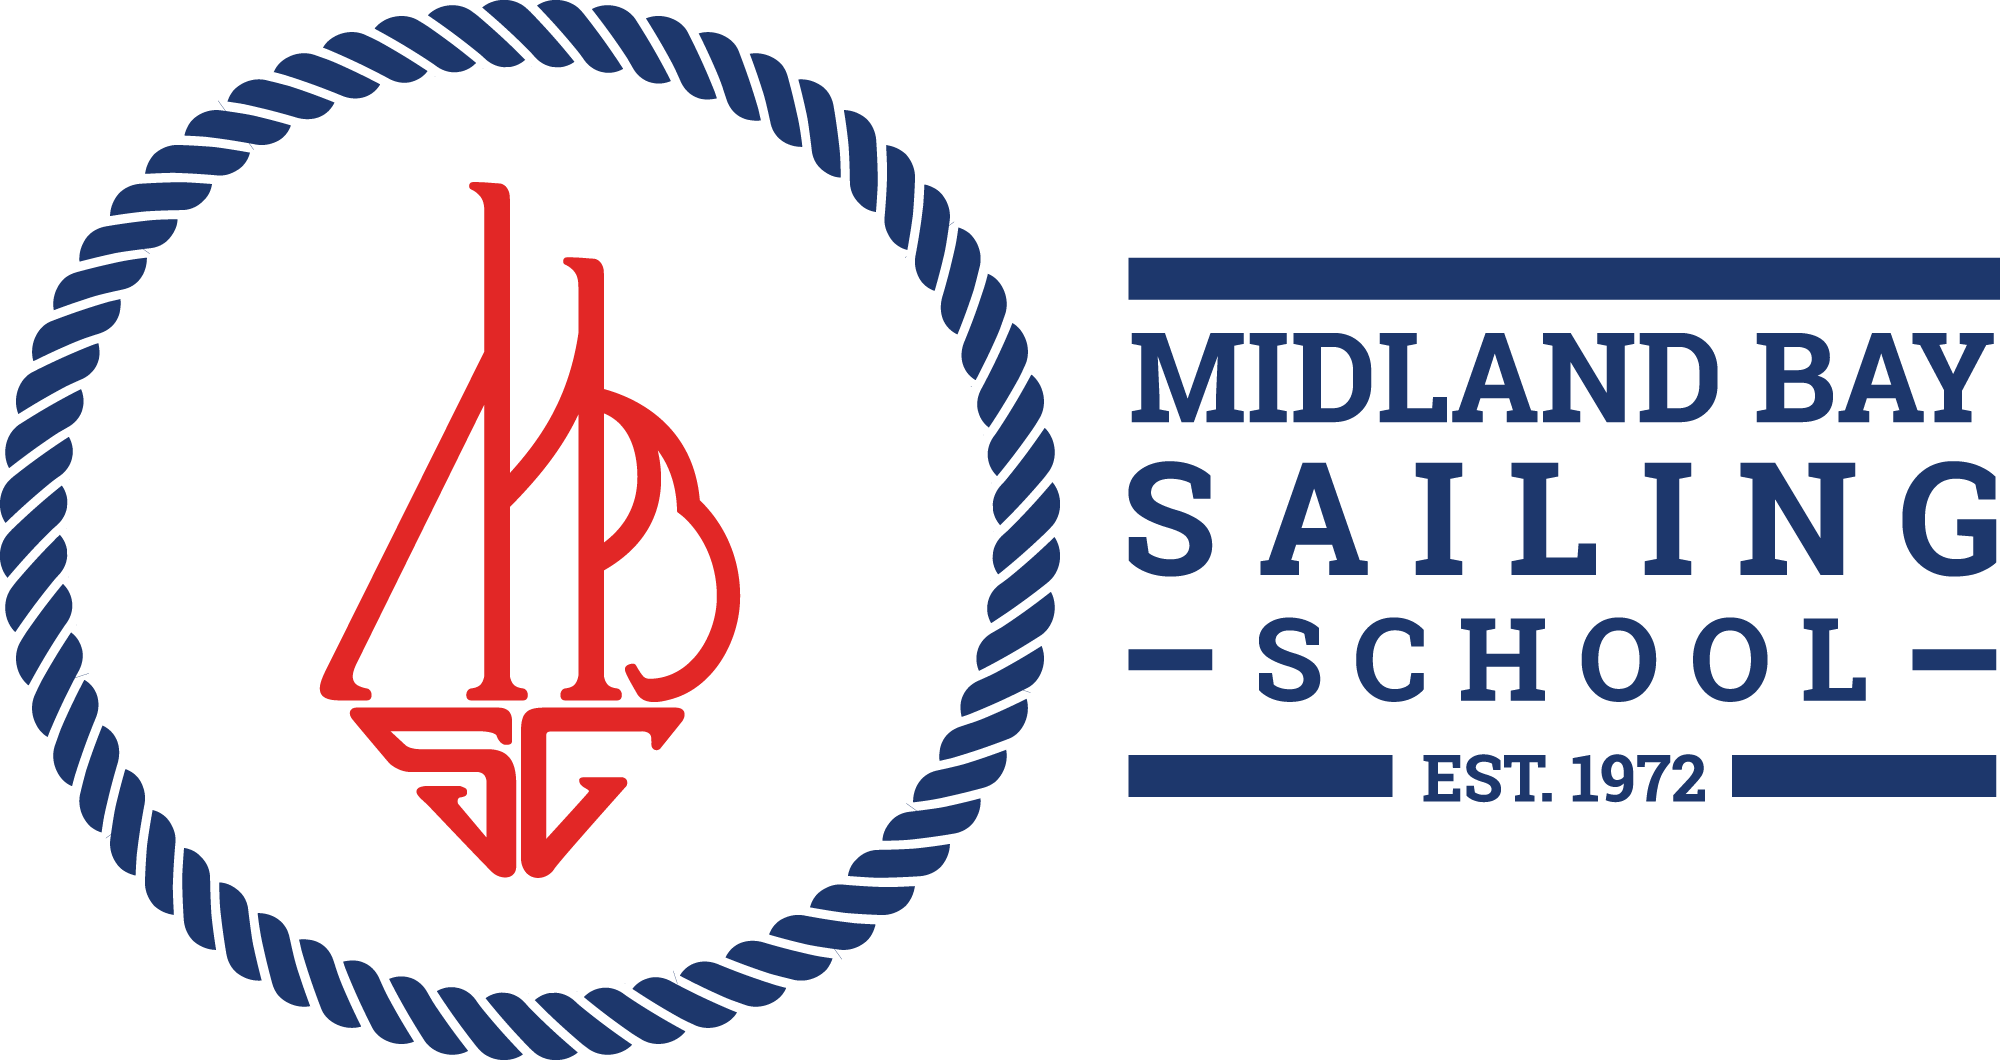 Midland Bay Sailing School